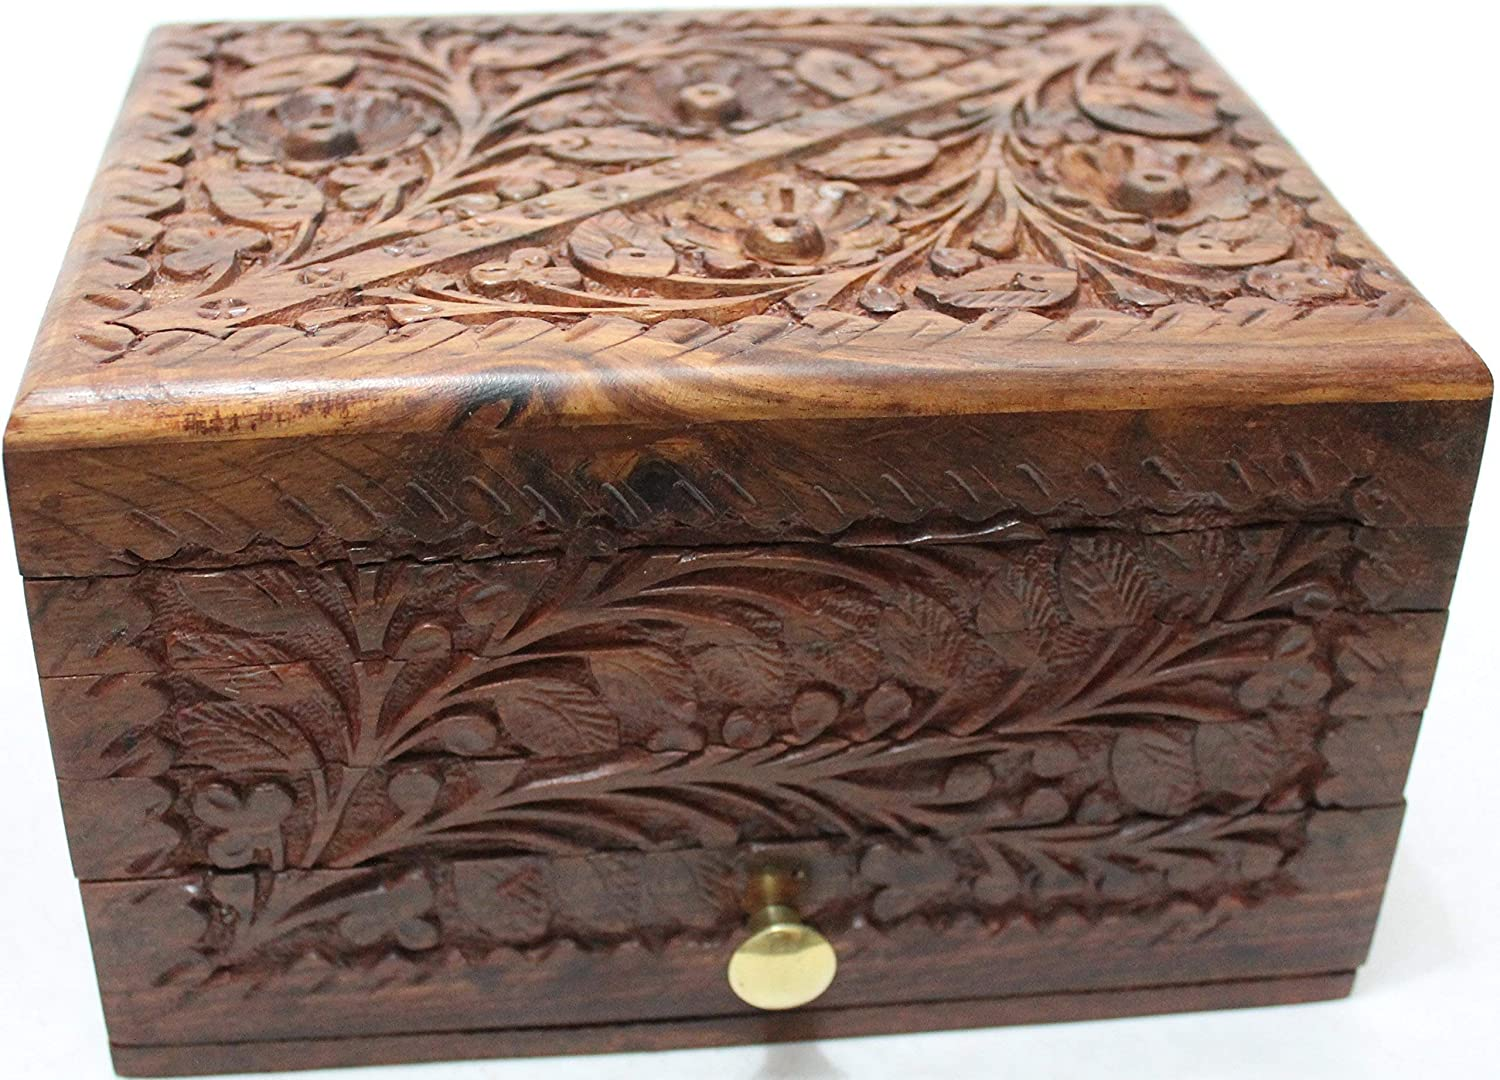 Unique Precious Stone Wooden Thanksgiving Holiday Gift Hers Jewelry Box with Secret Lock and Drawer Hand Carving Floral Designs 8x6